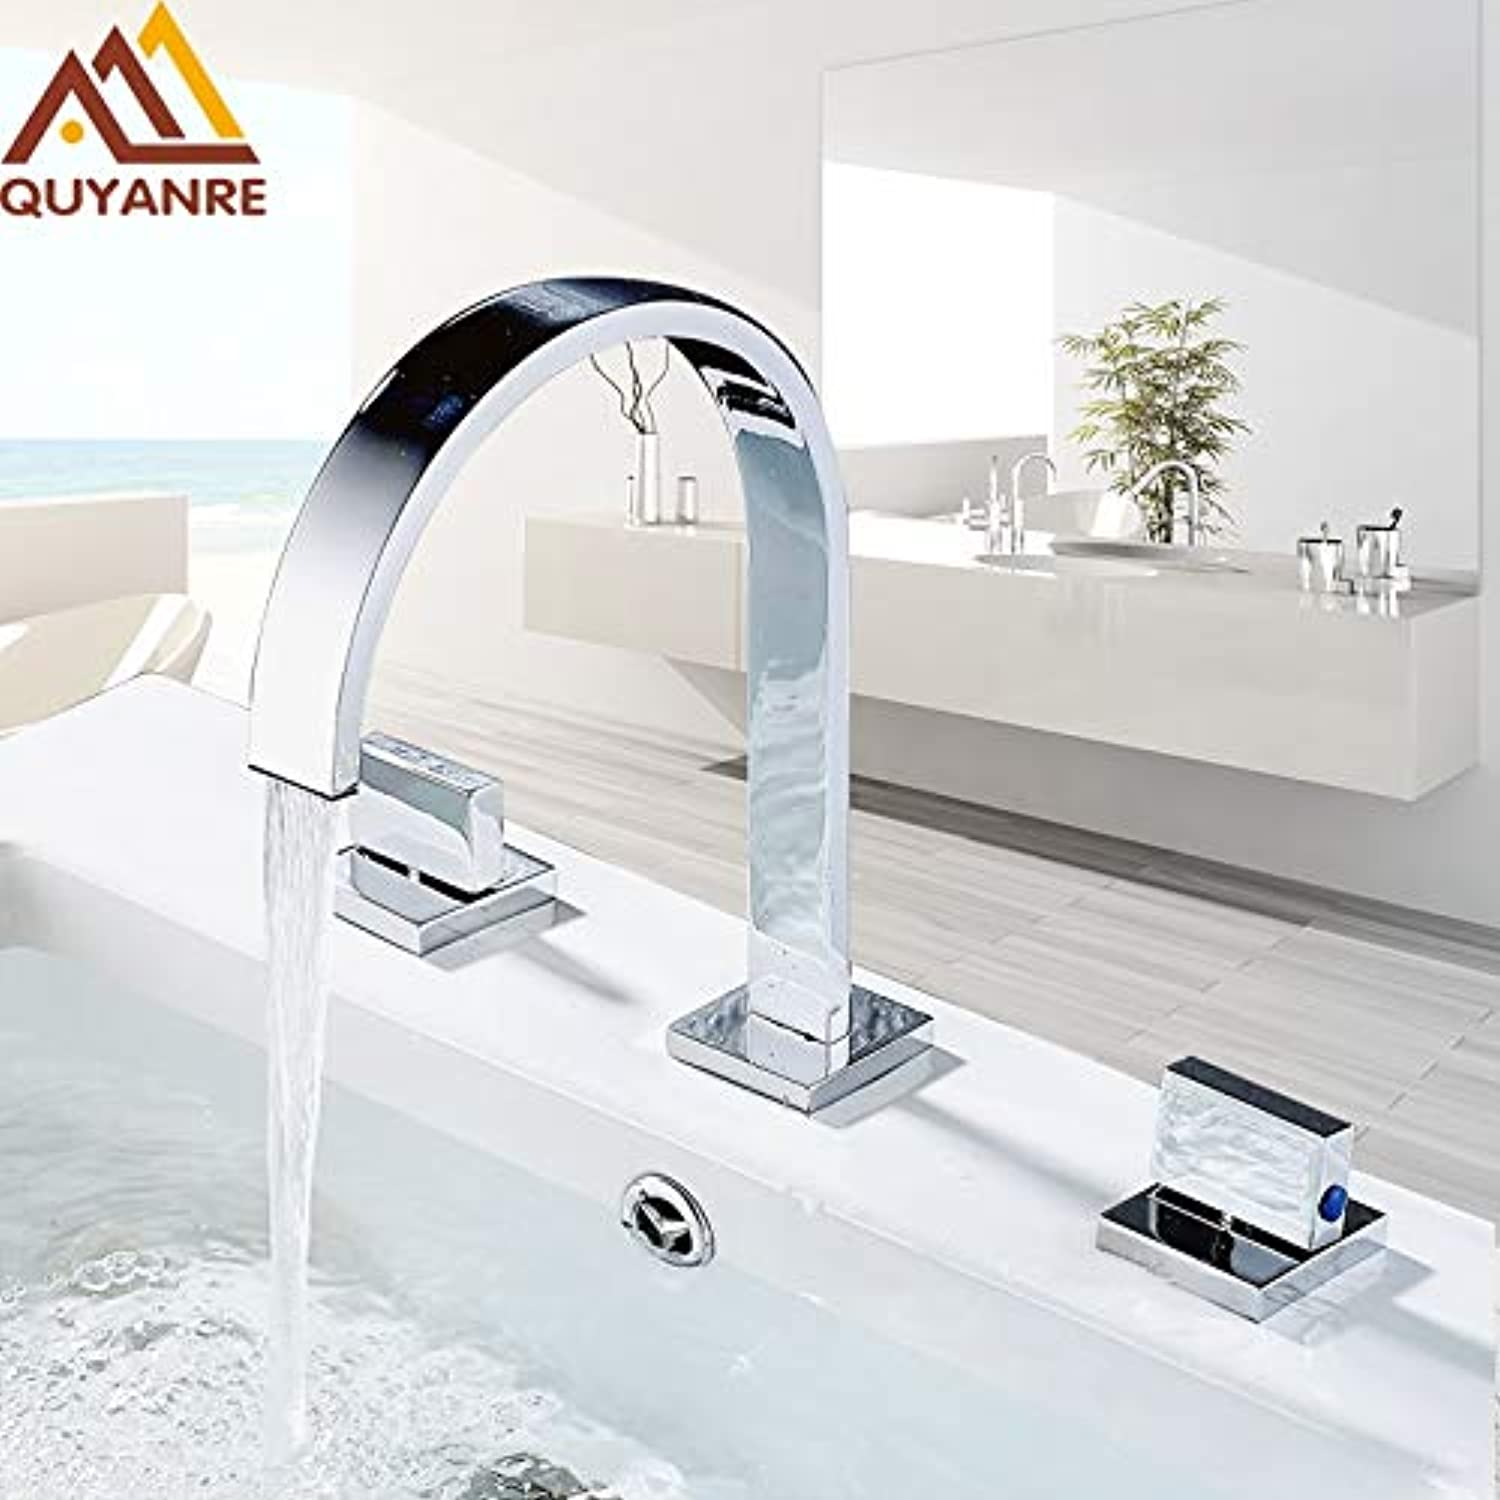 U-Enjoy Chandelier Faucets Chrome Basin Polished Mounted Top Quality Square Deck Bathroom Sink Faucets Hole Double Handle 3 Hot and Cold Water Tap Free Shipping